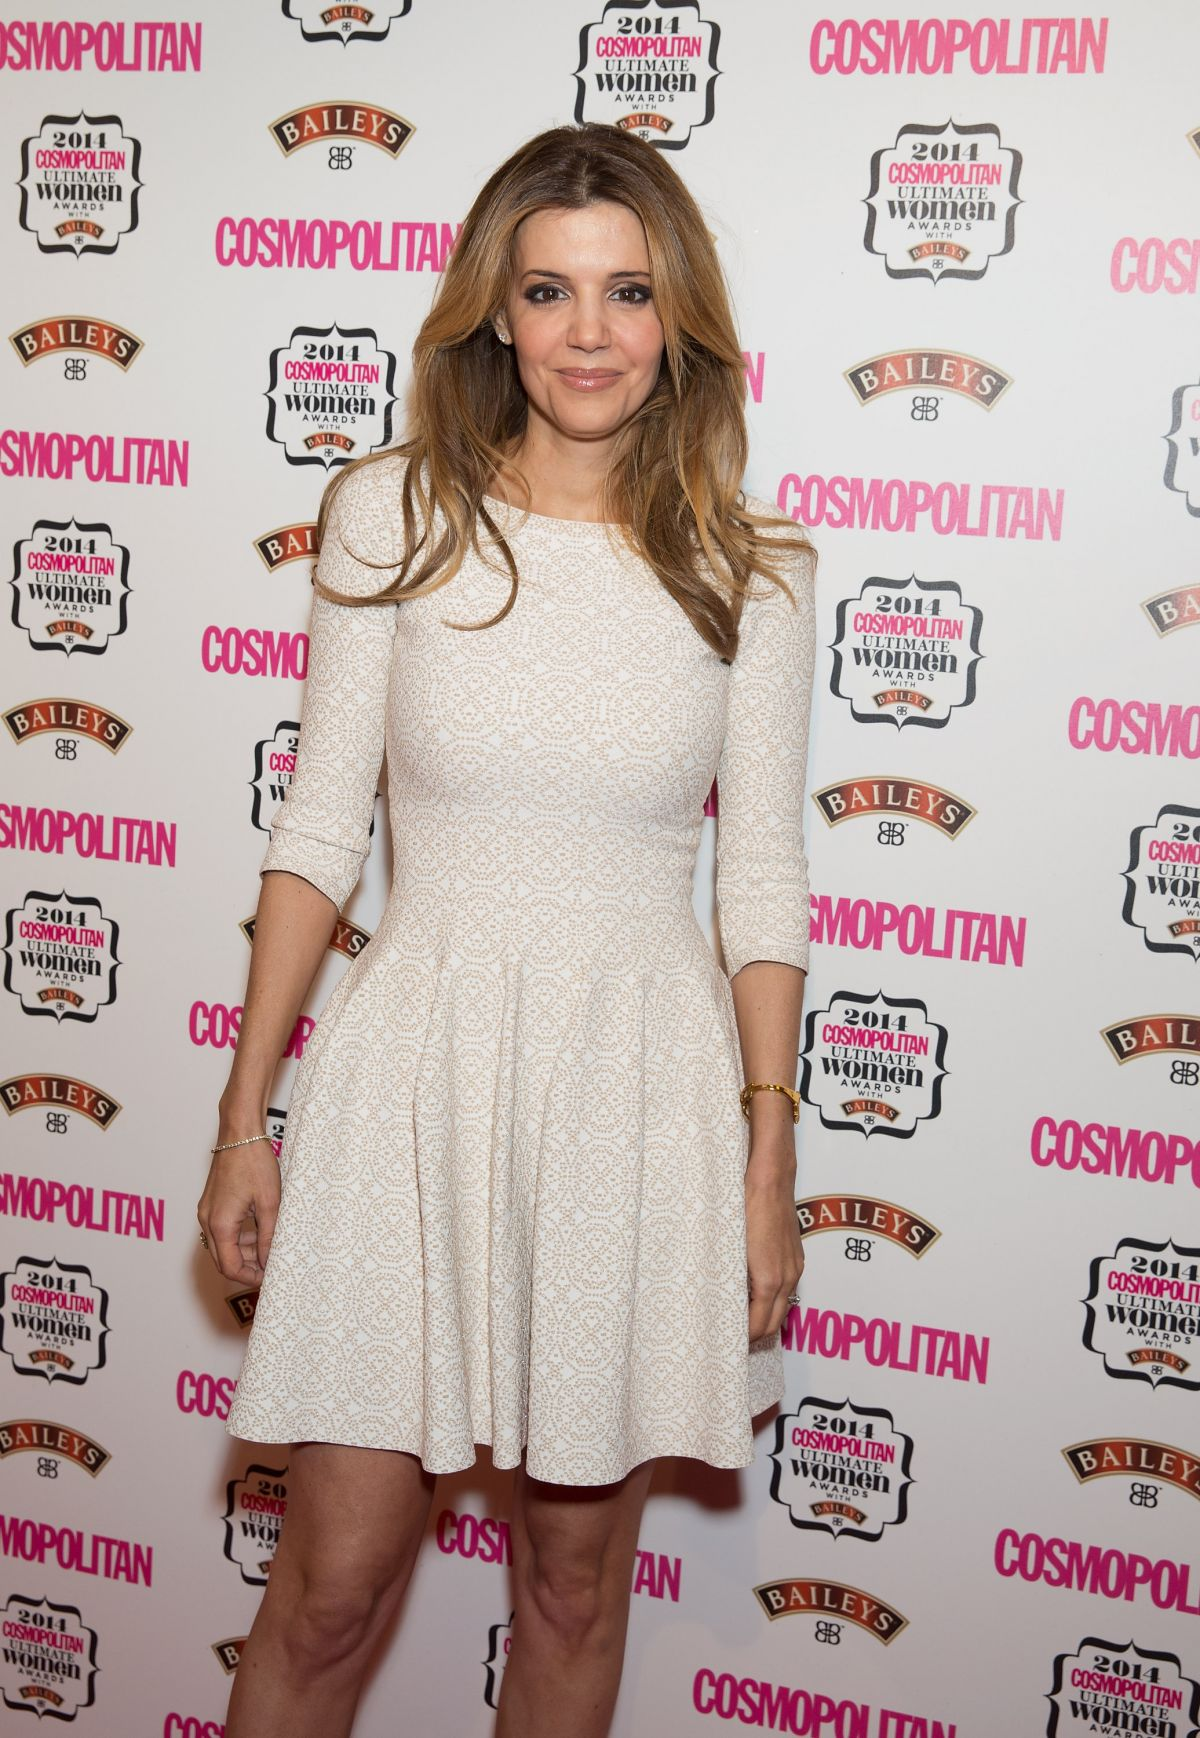 LINDA PAPADOPULOS at Cosmopolitan Ultimate Women Awards 2014 in London